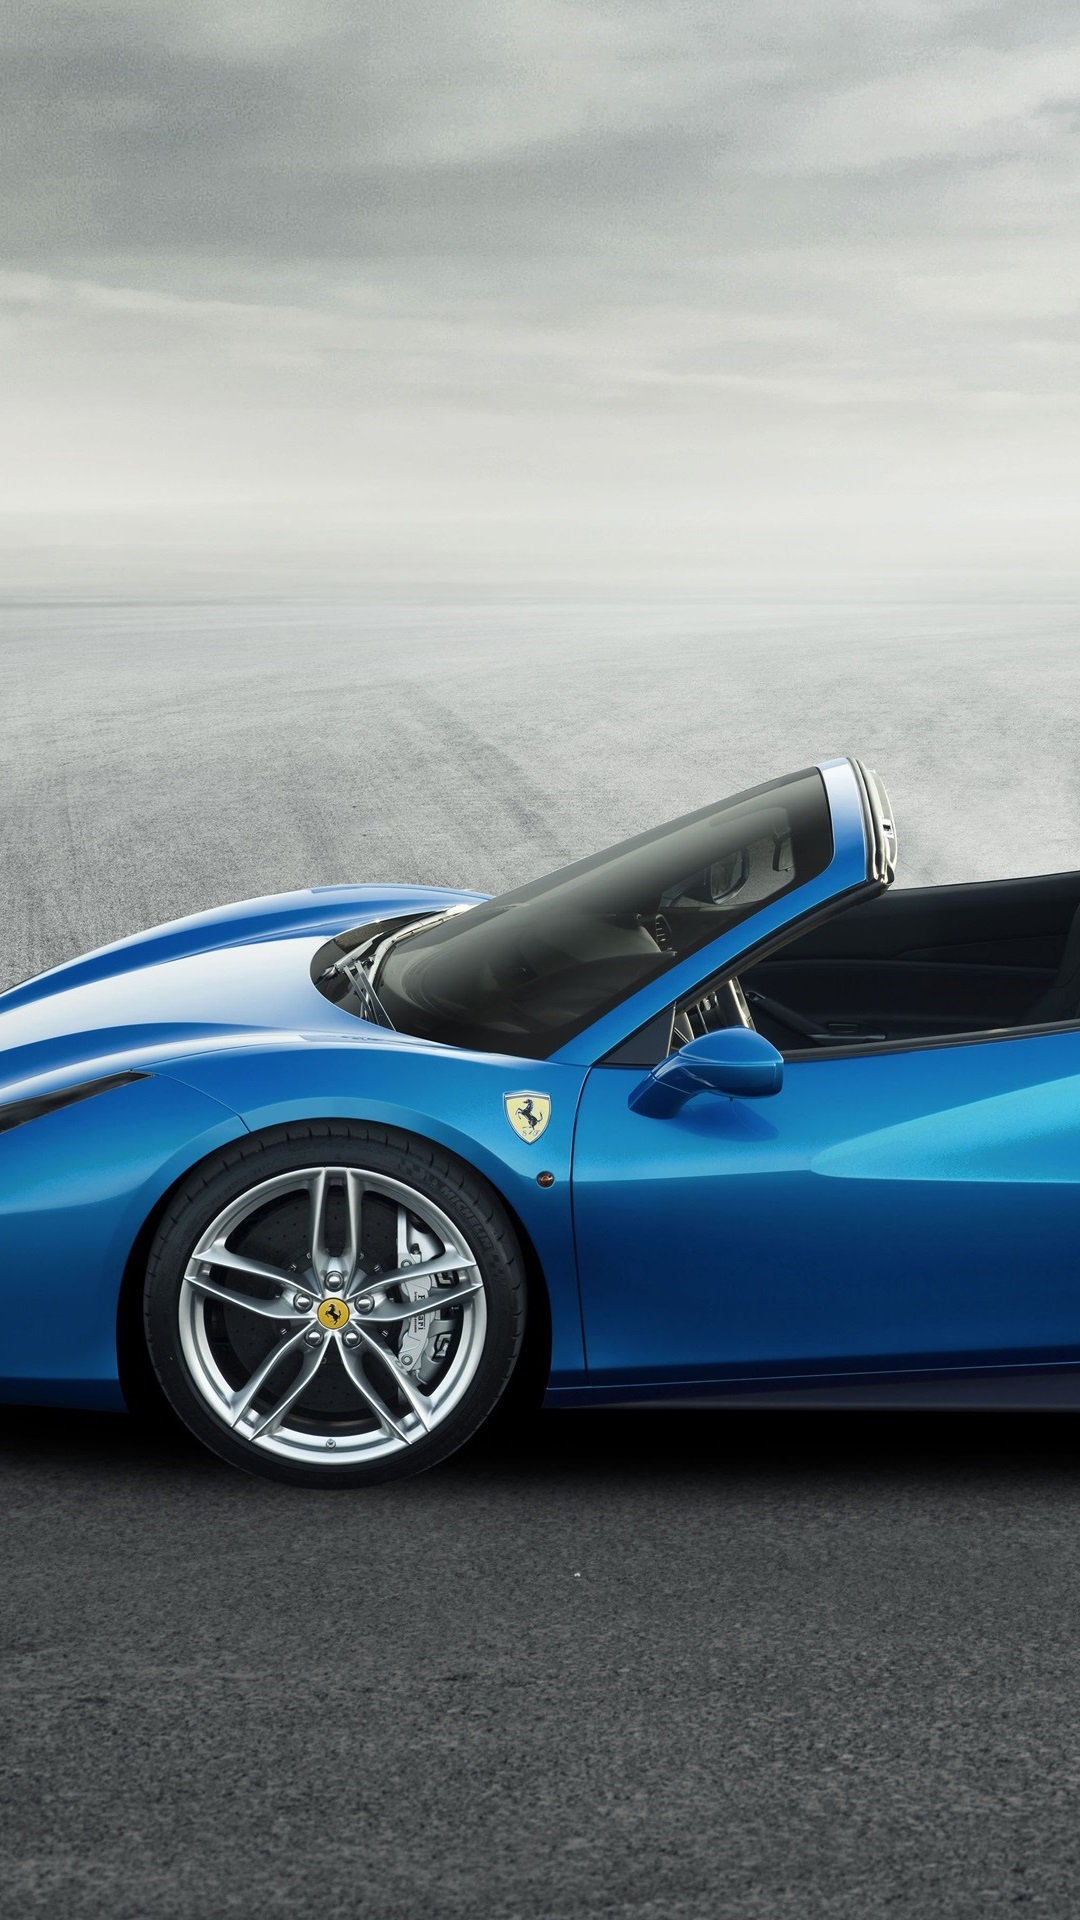 Ferrari 488 Spider Blue Supercar Side View 1080x1920 Iphone 8 7 6 6s Plus Wallpaper Background Picture Image